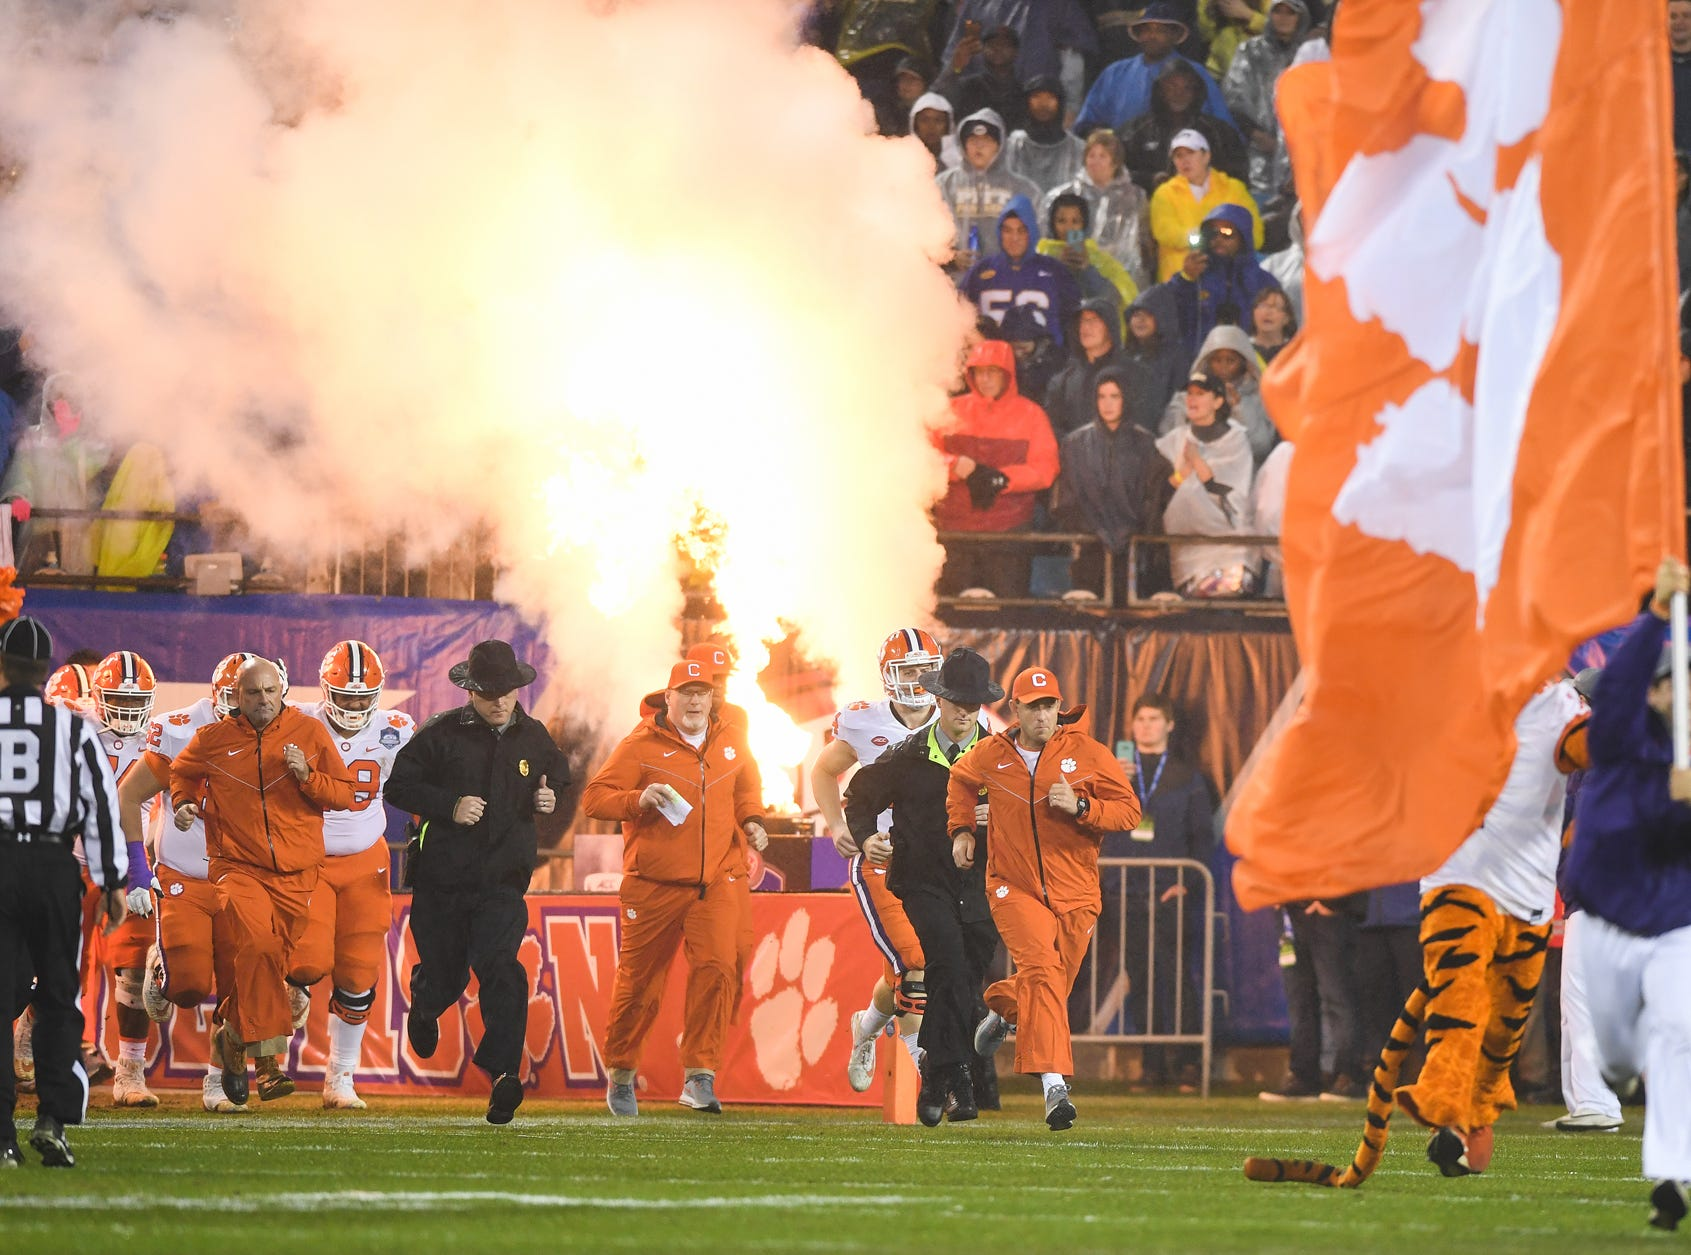 Clemson head coach Dabo Swinney leads his team onto the field during pregame of the Dr. Pepper ACC Championship at Bank of America Stadium in Charlotte, N.C. Saturday, December 1, 2018.